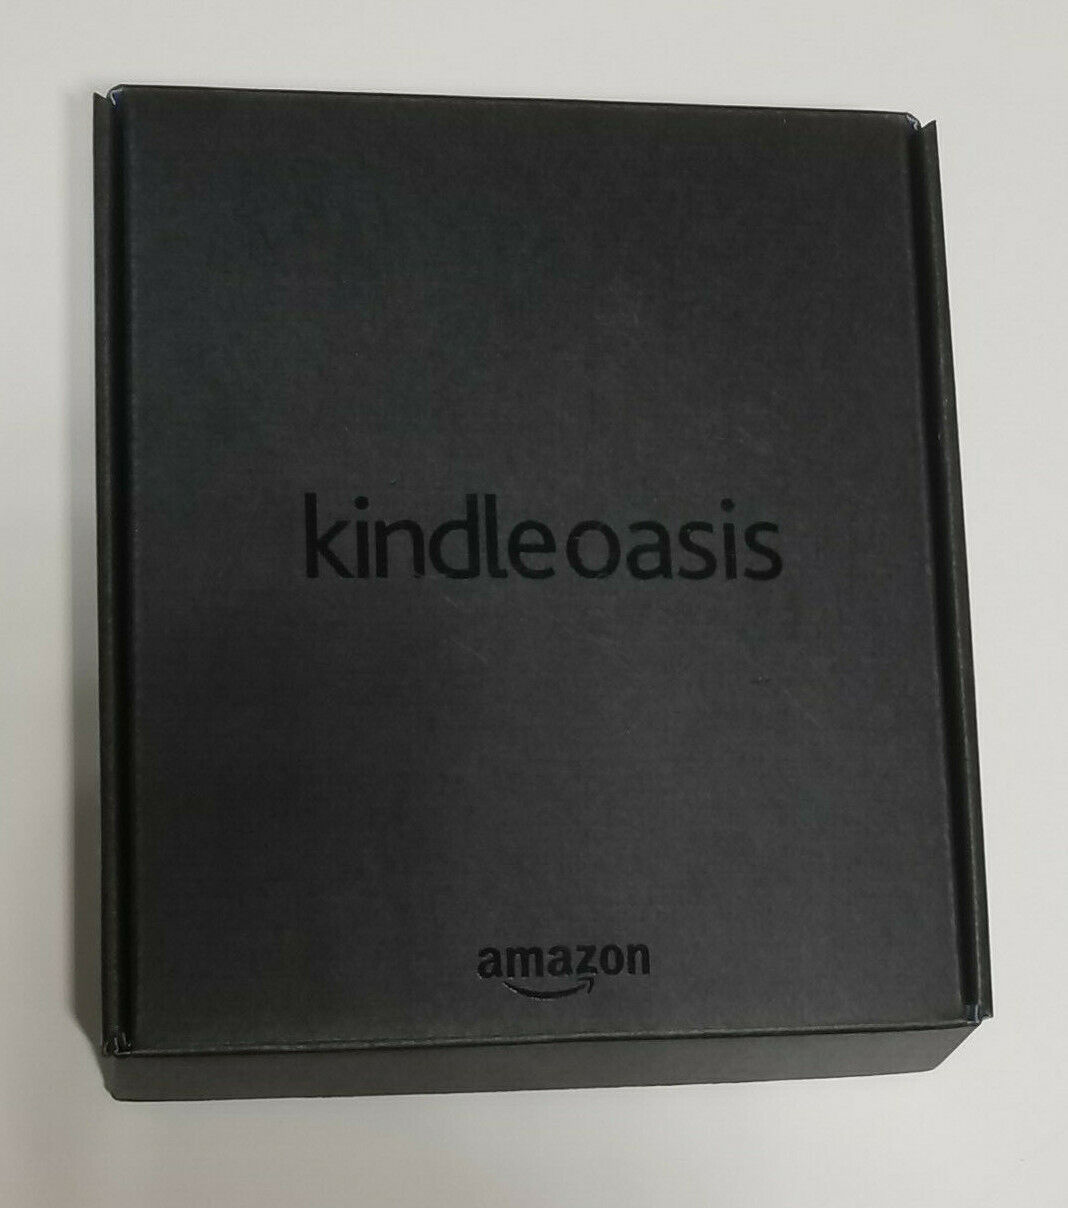 Amazon Kindle Oasis 8th Generation - Kindle Only - 6